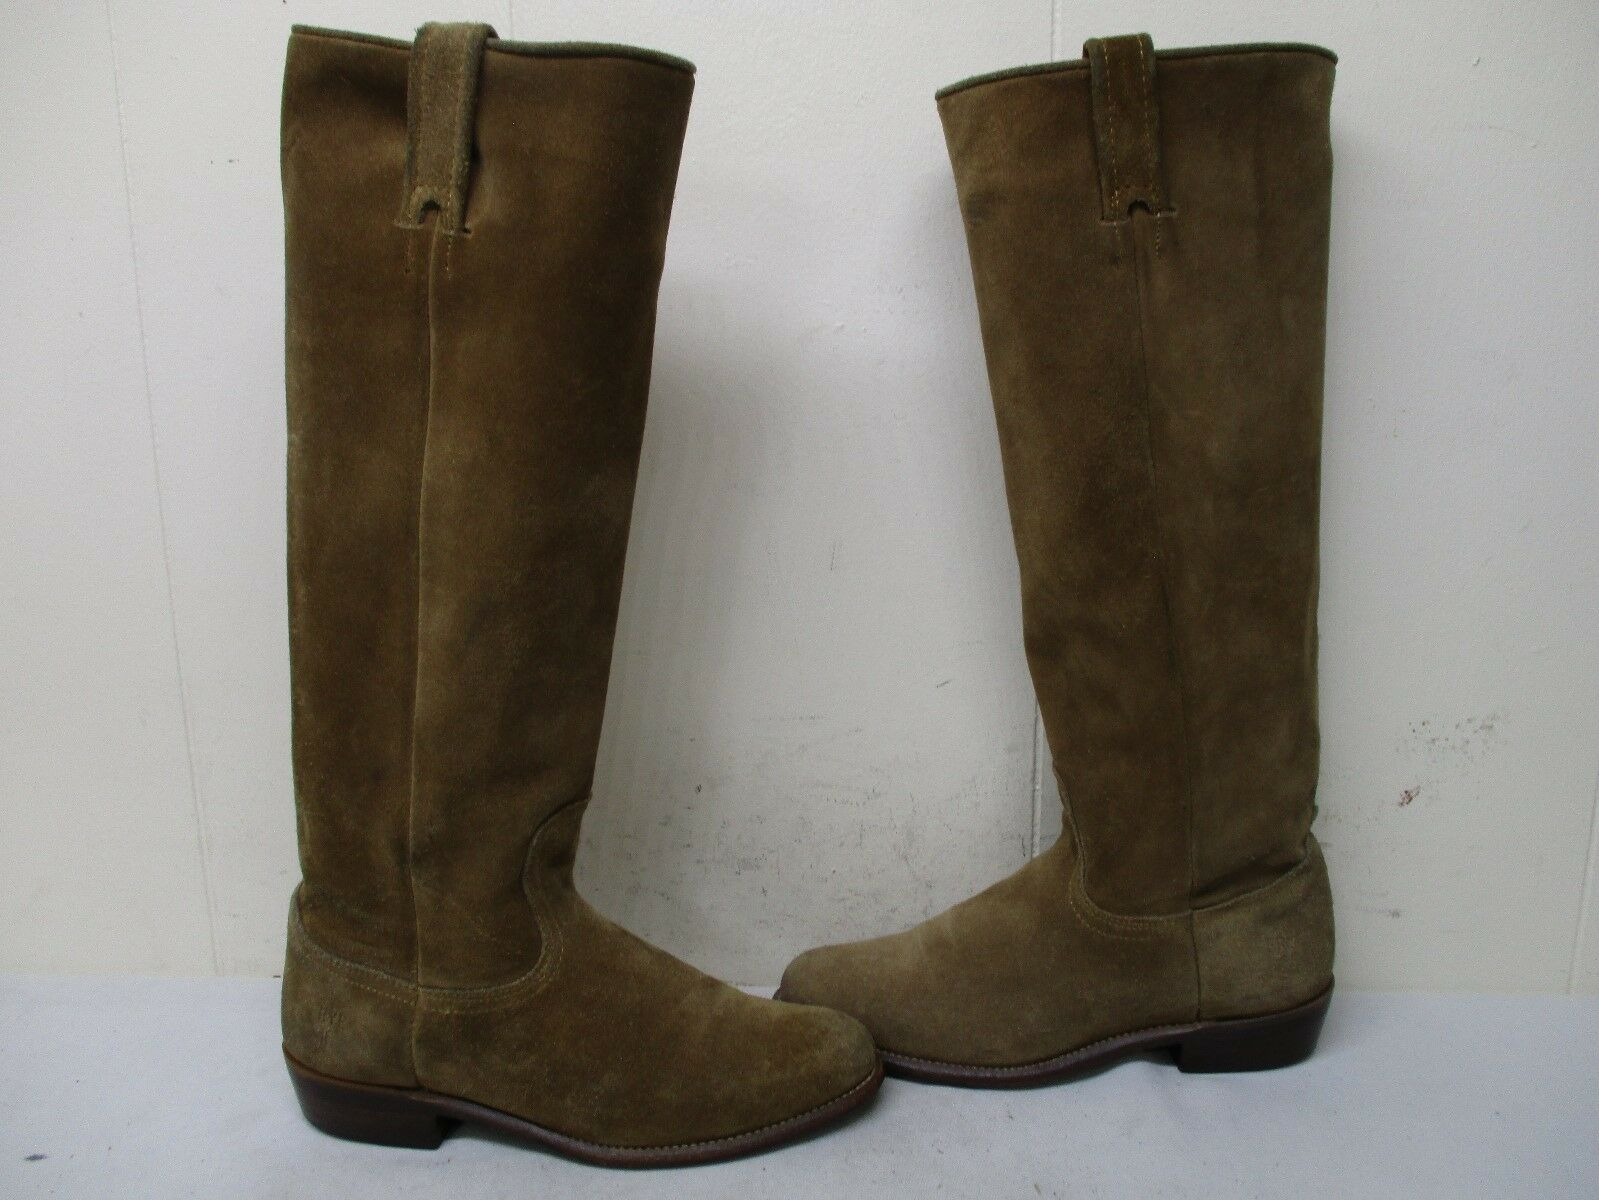 Frye Brown Suede Leather Knee High Cowboy Boots Womens Size 5.5 B Style 77072